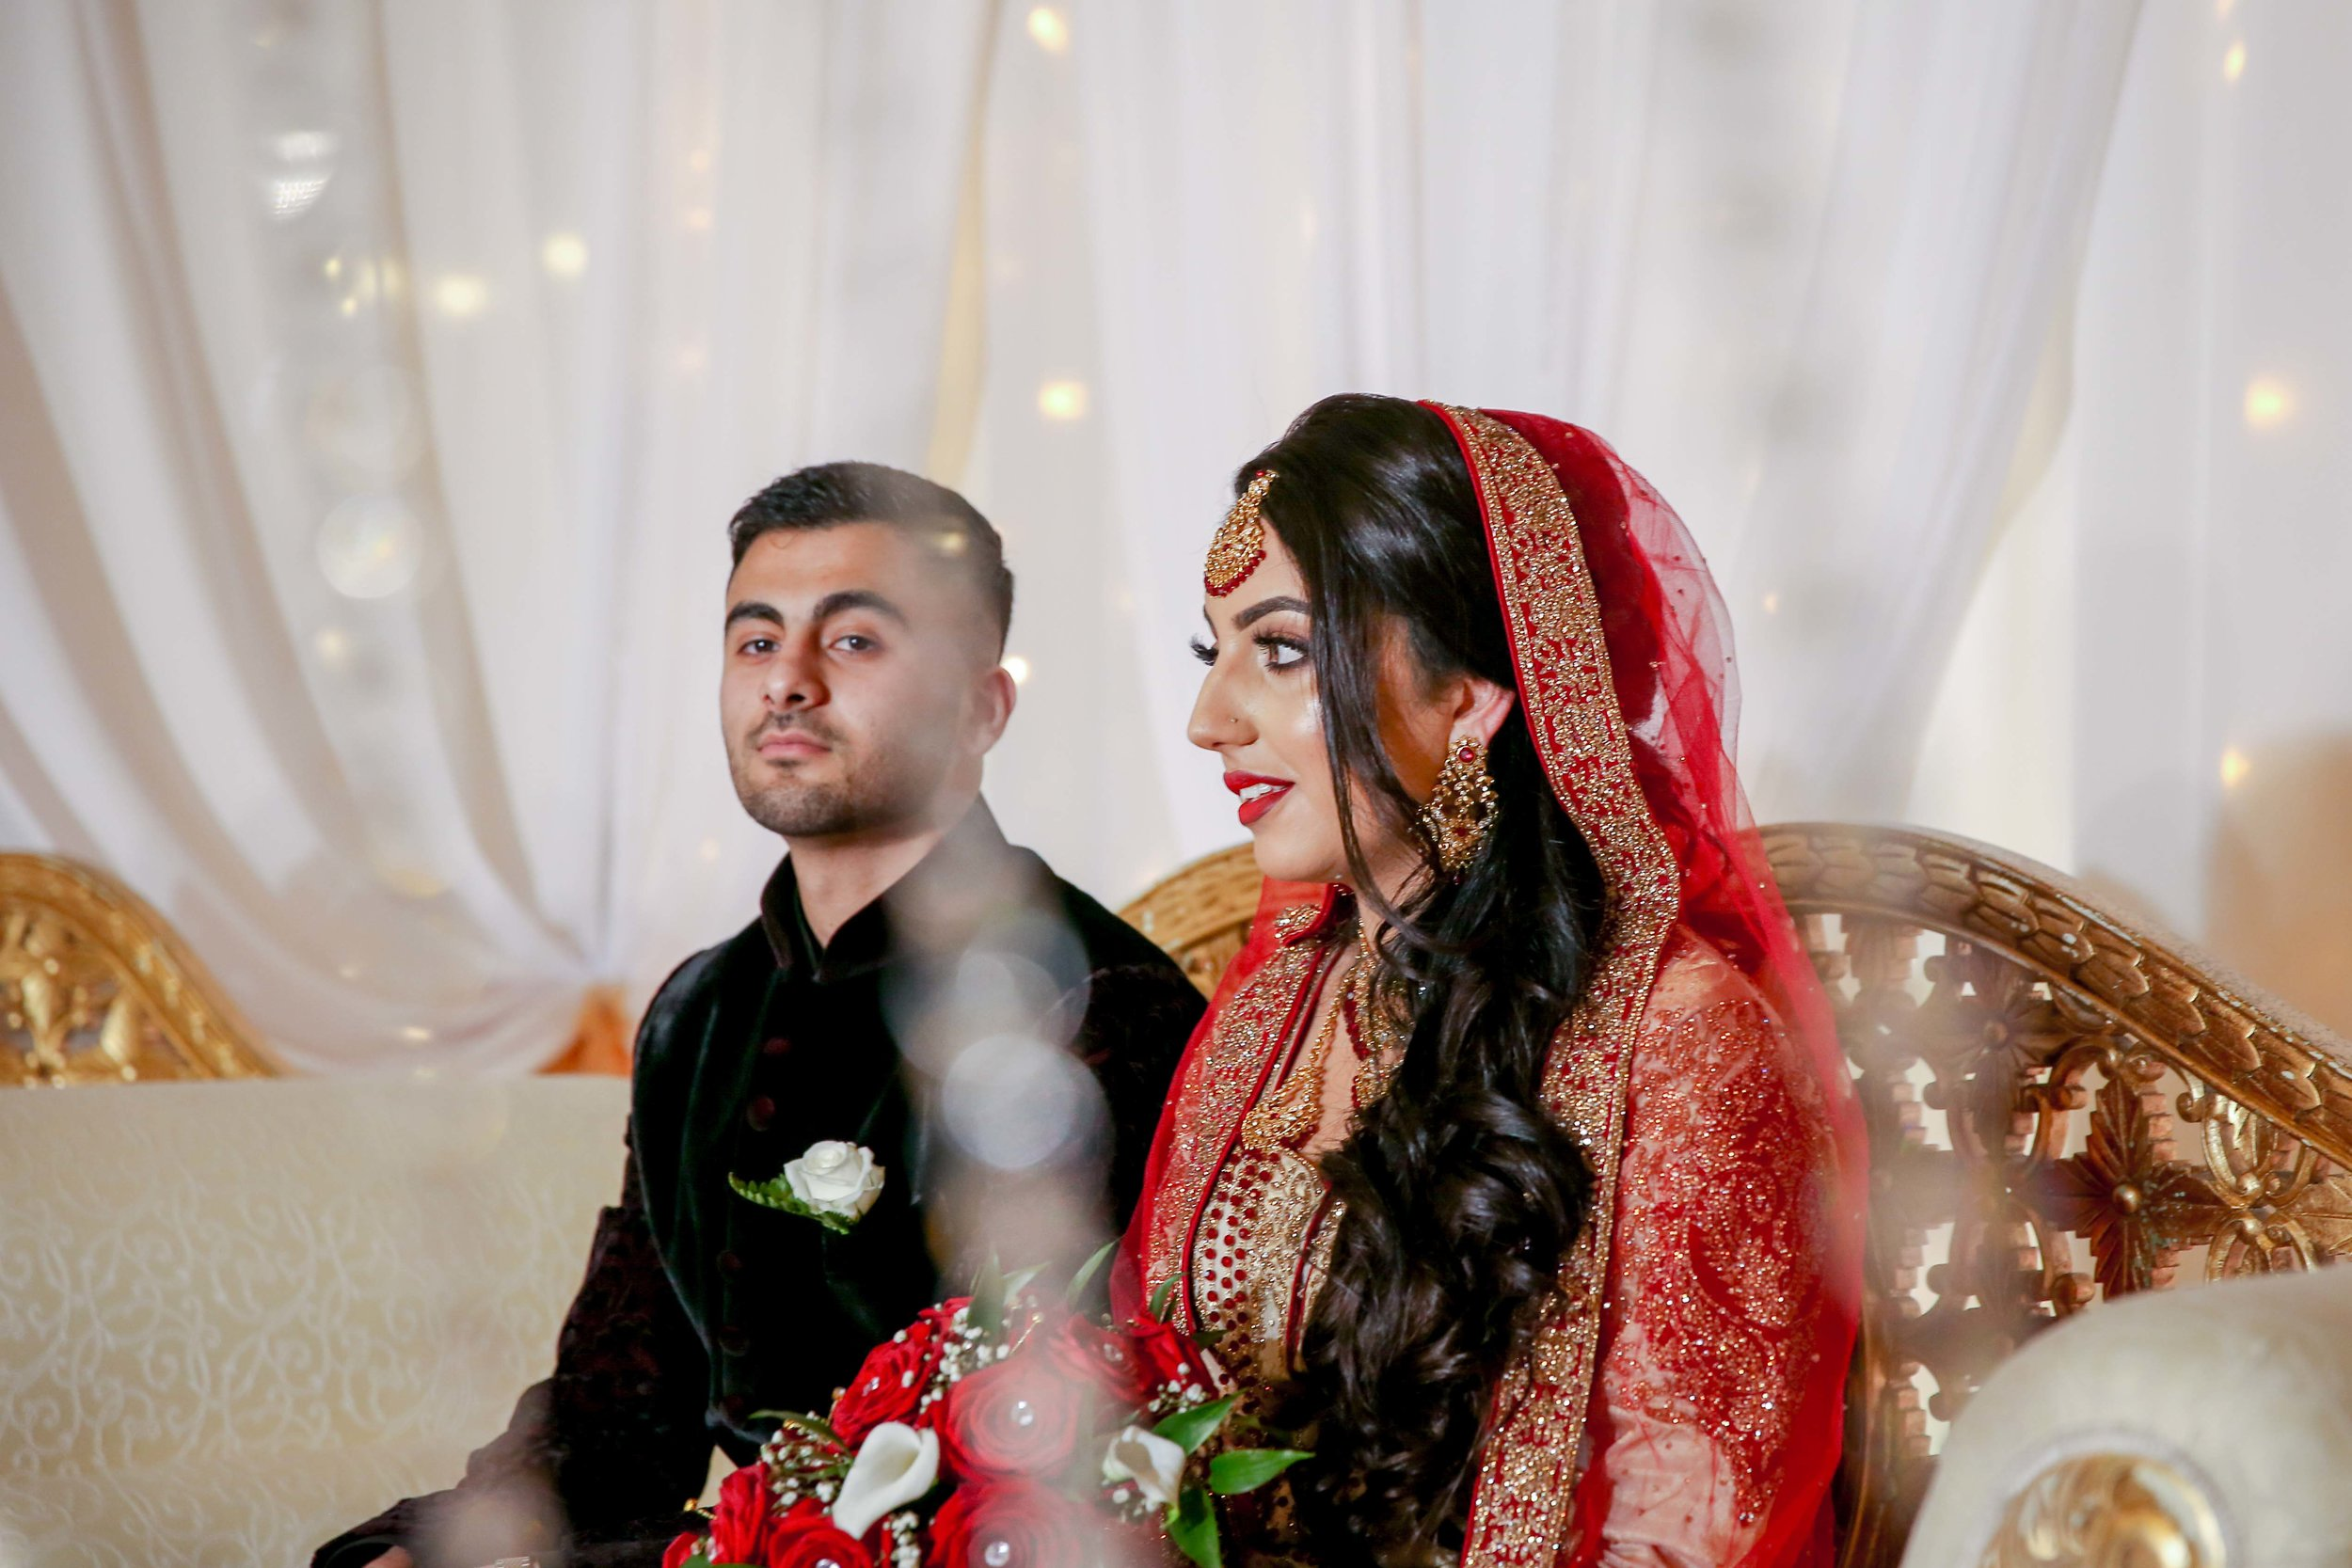 Female-asian-wedding-photographer-Cardiff-City-Hall-natalia-smith-photography-27.jpg